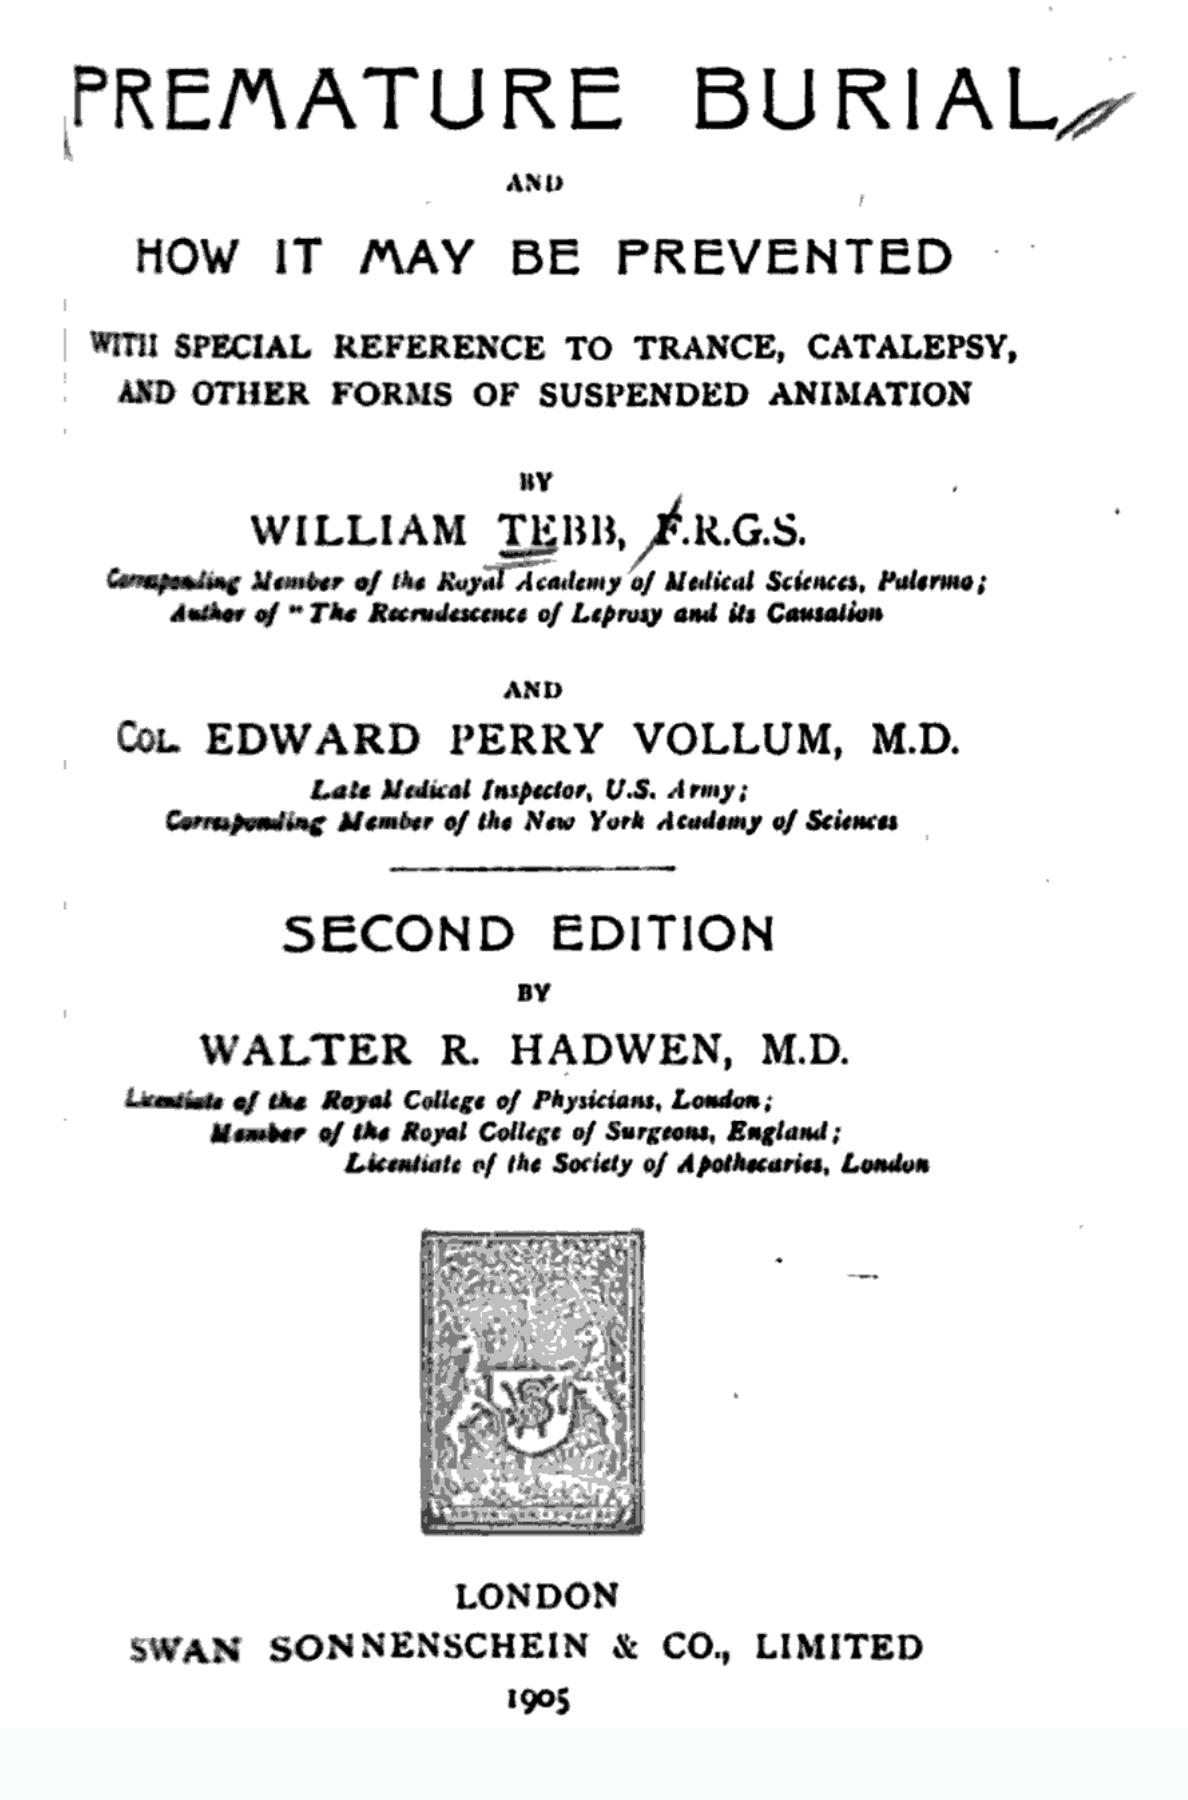 Premature Burial title page from the second edition, 1905.